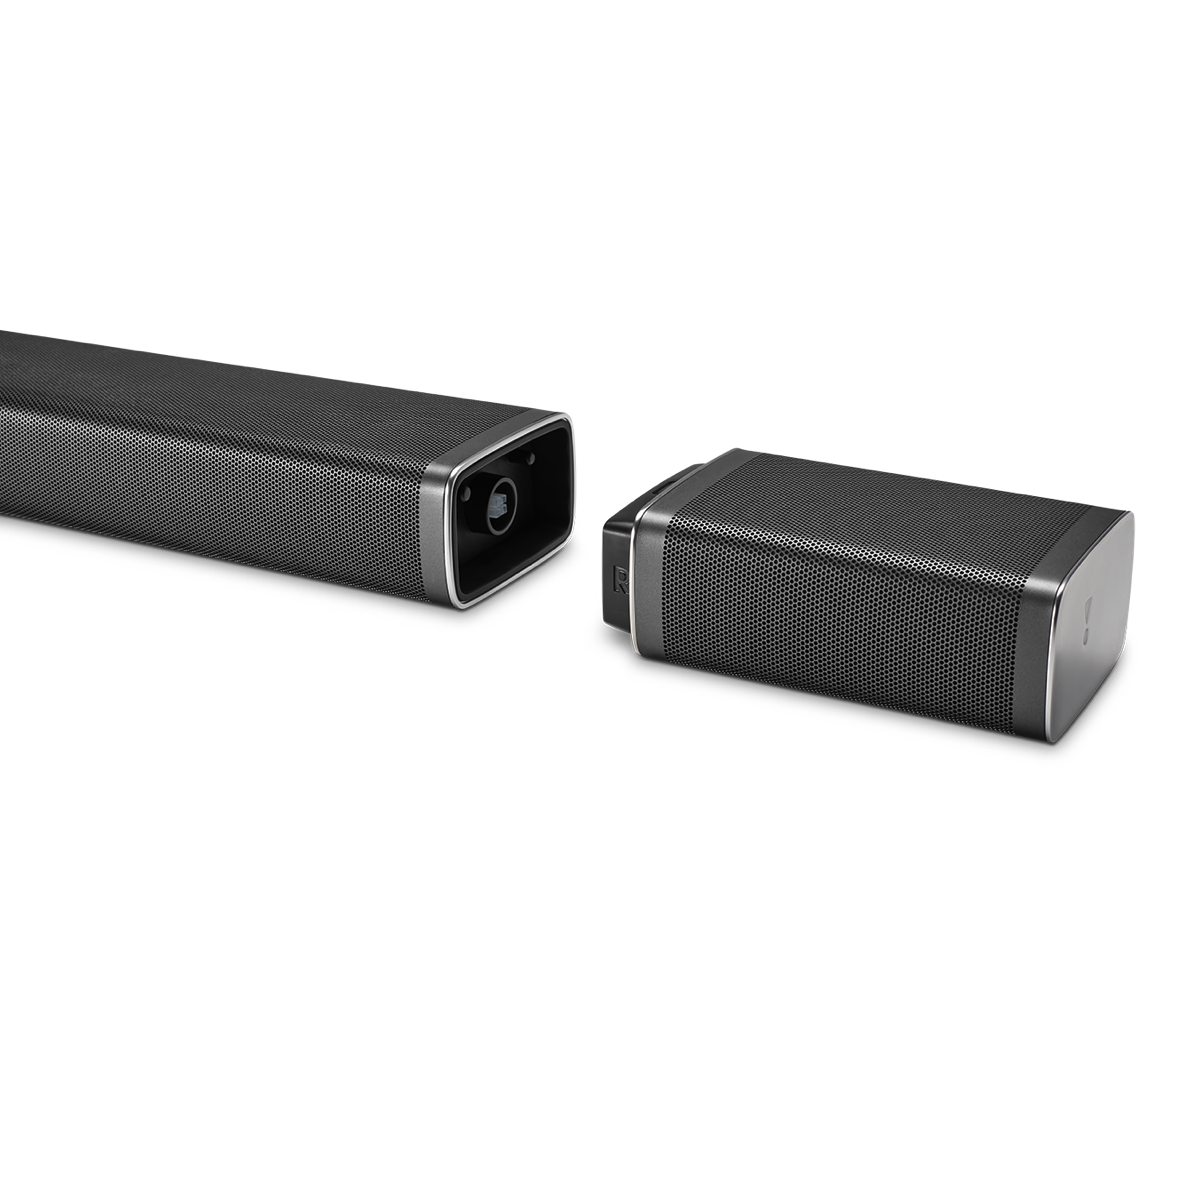 JBL Bar 5.1 - Soundbar and Subwoofer System with Detachachable Surrounds, JBL, Soundbar - AVStore.in